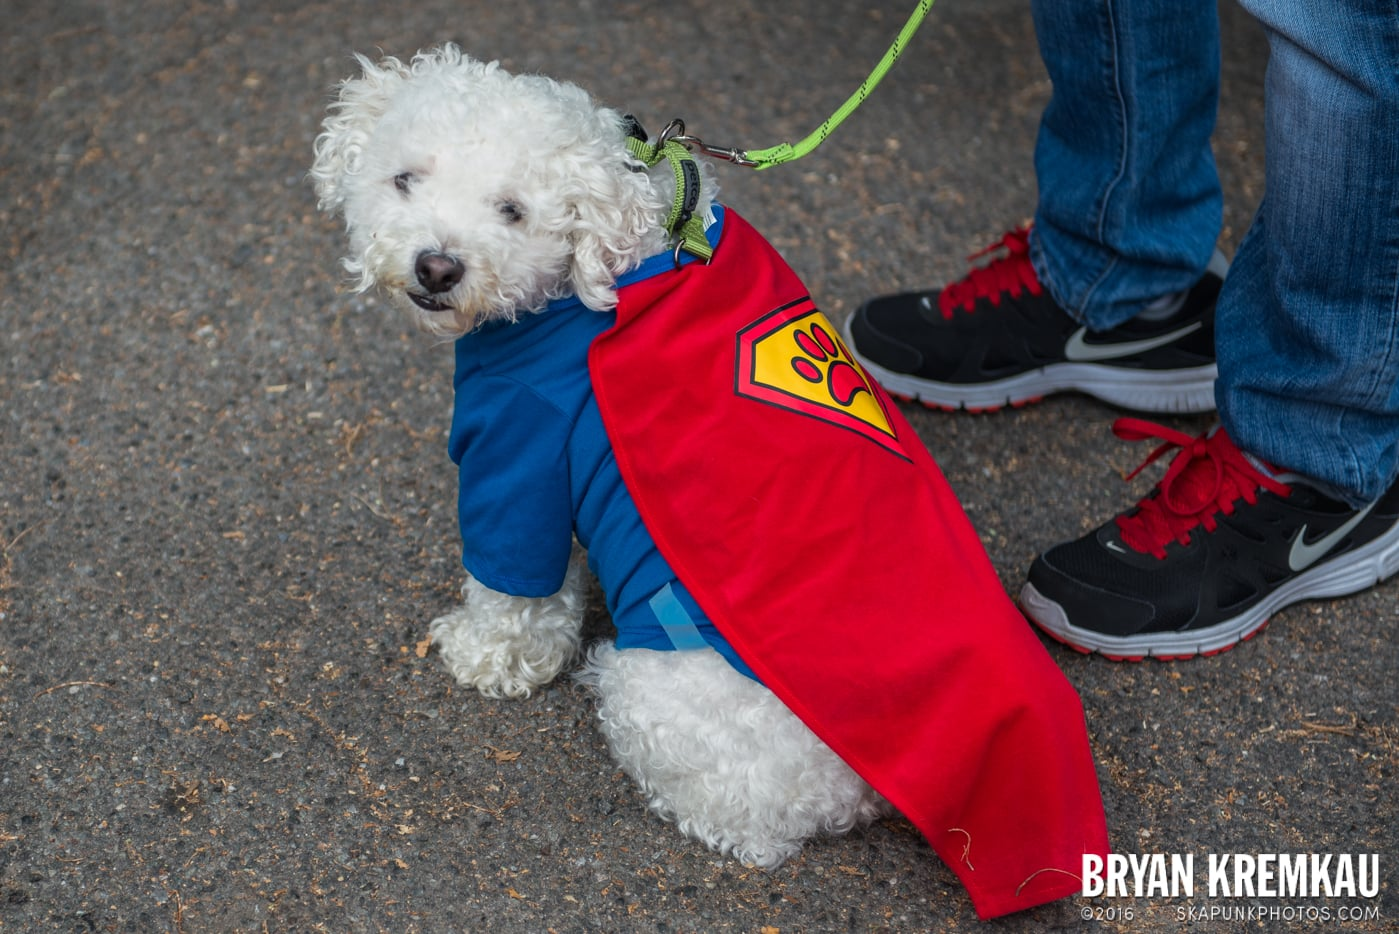 Tompkins Square Halloween Dog Parade 2015 @ Tompkins Square Park, NYC – 10.24.15 (21)